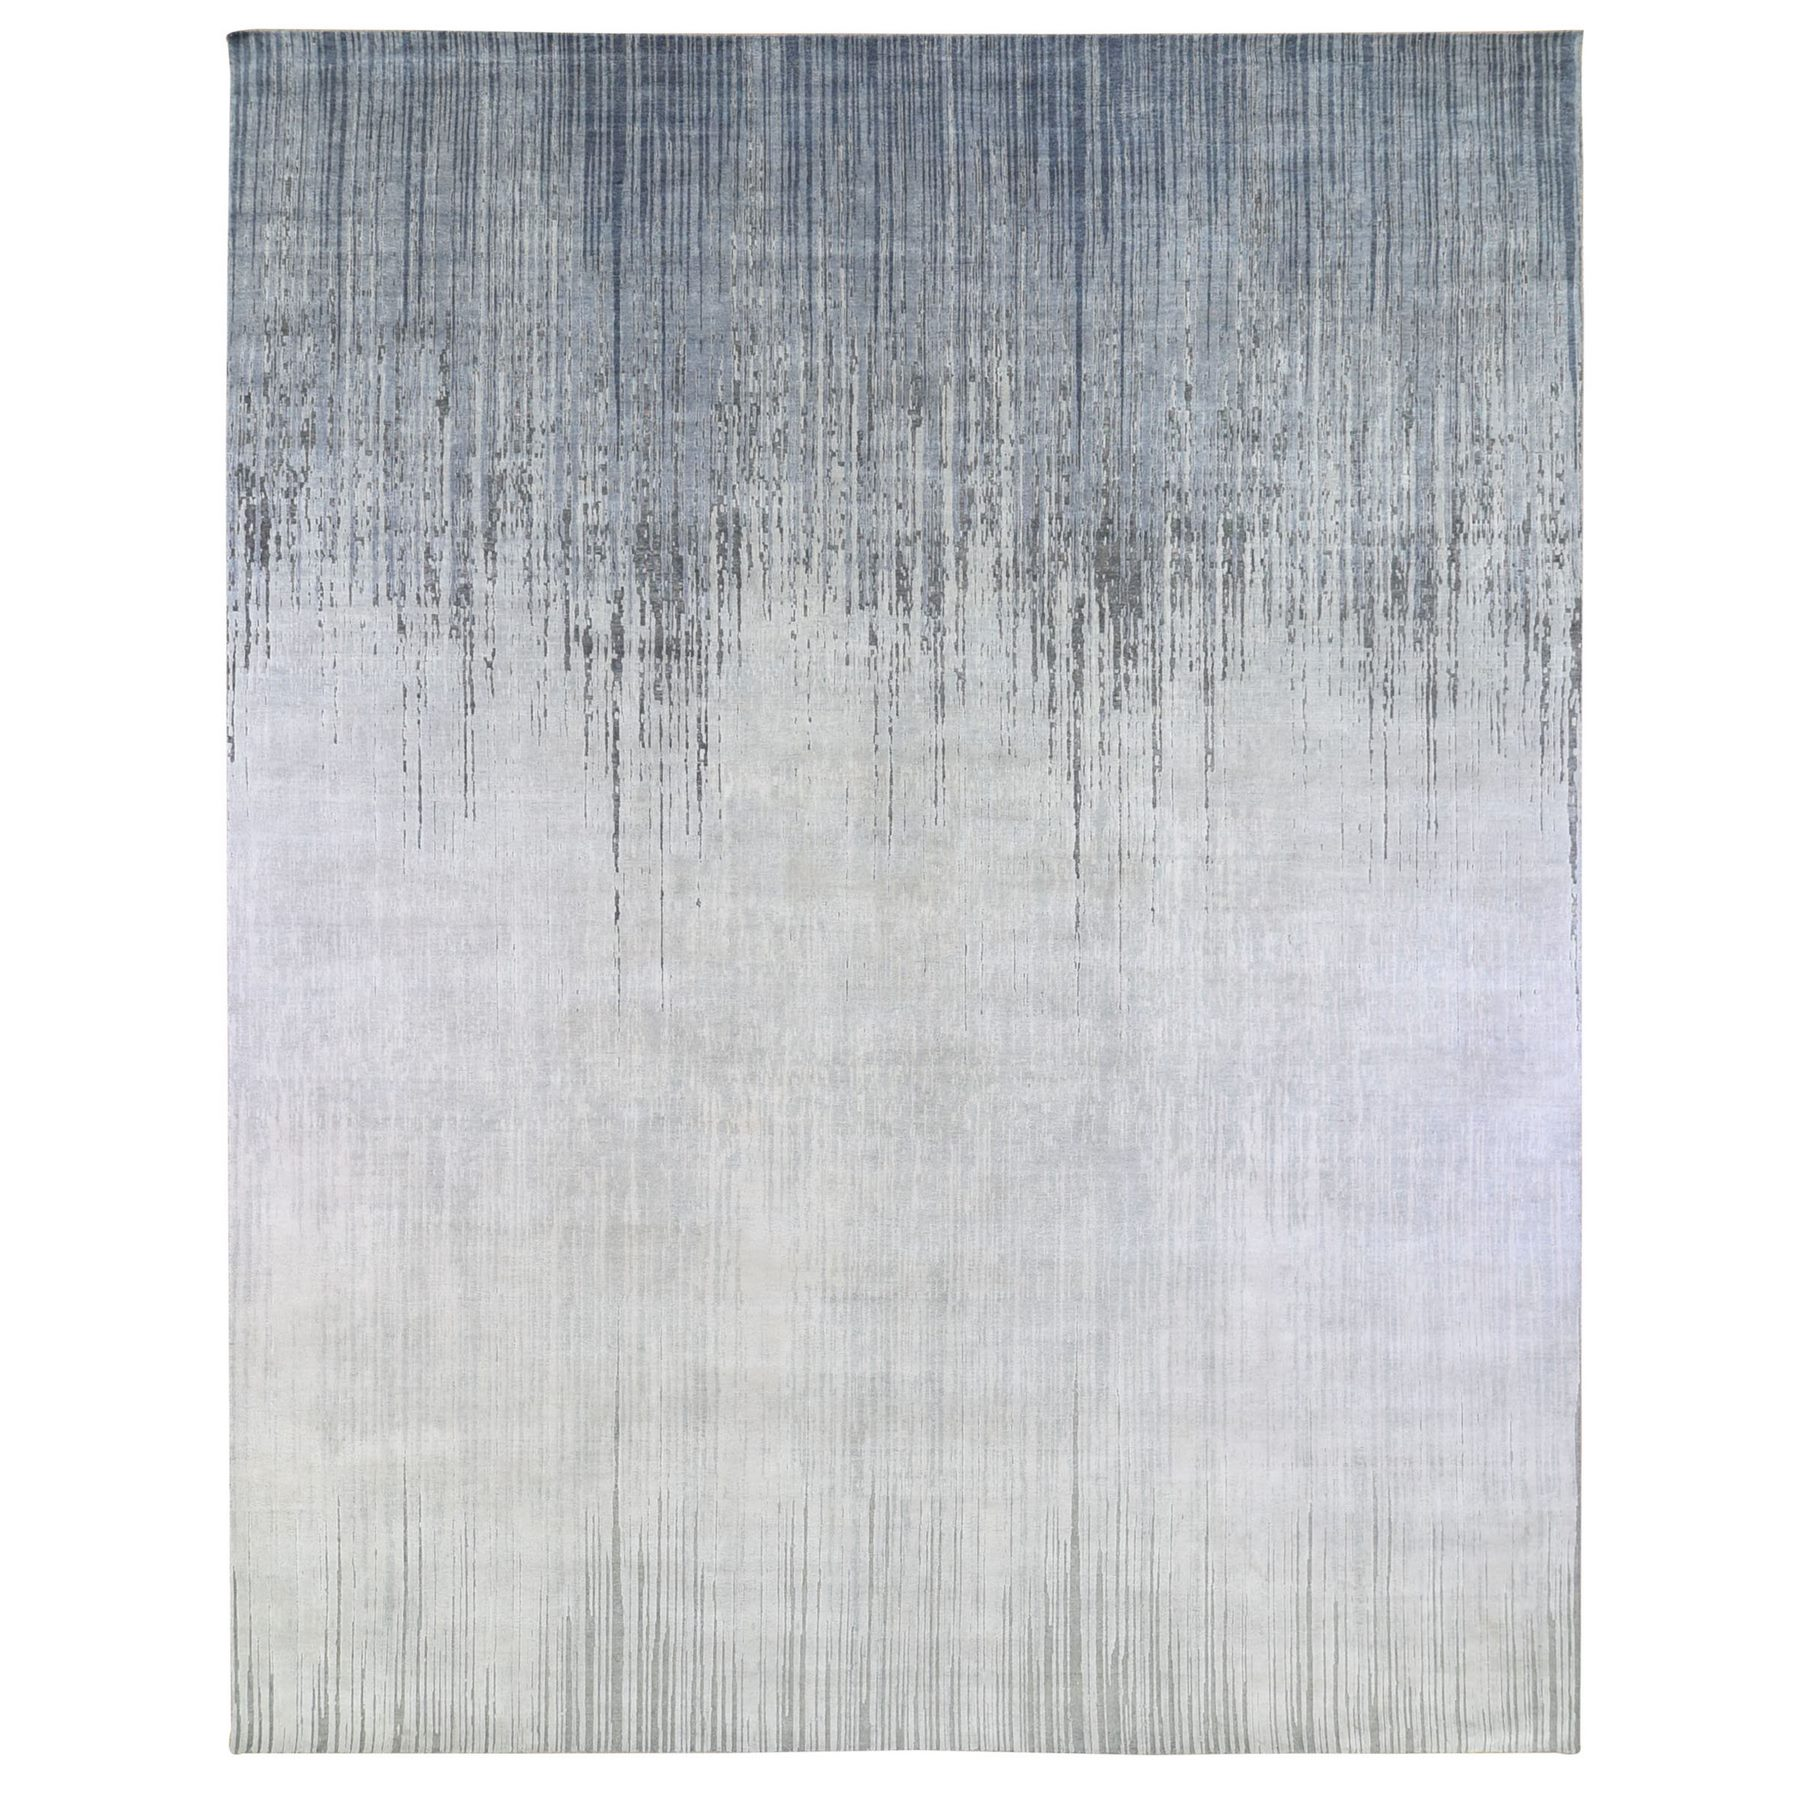 Mid Century Modern Collection Hand Knotted Grey Rug No: 1133700